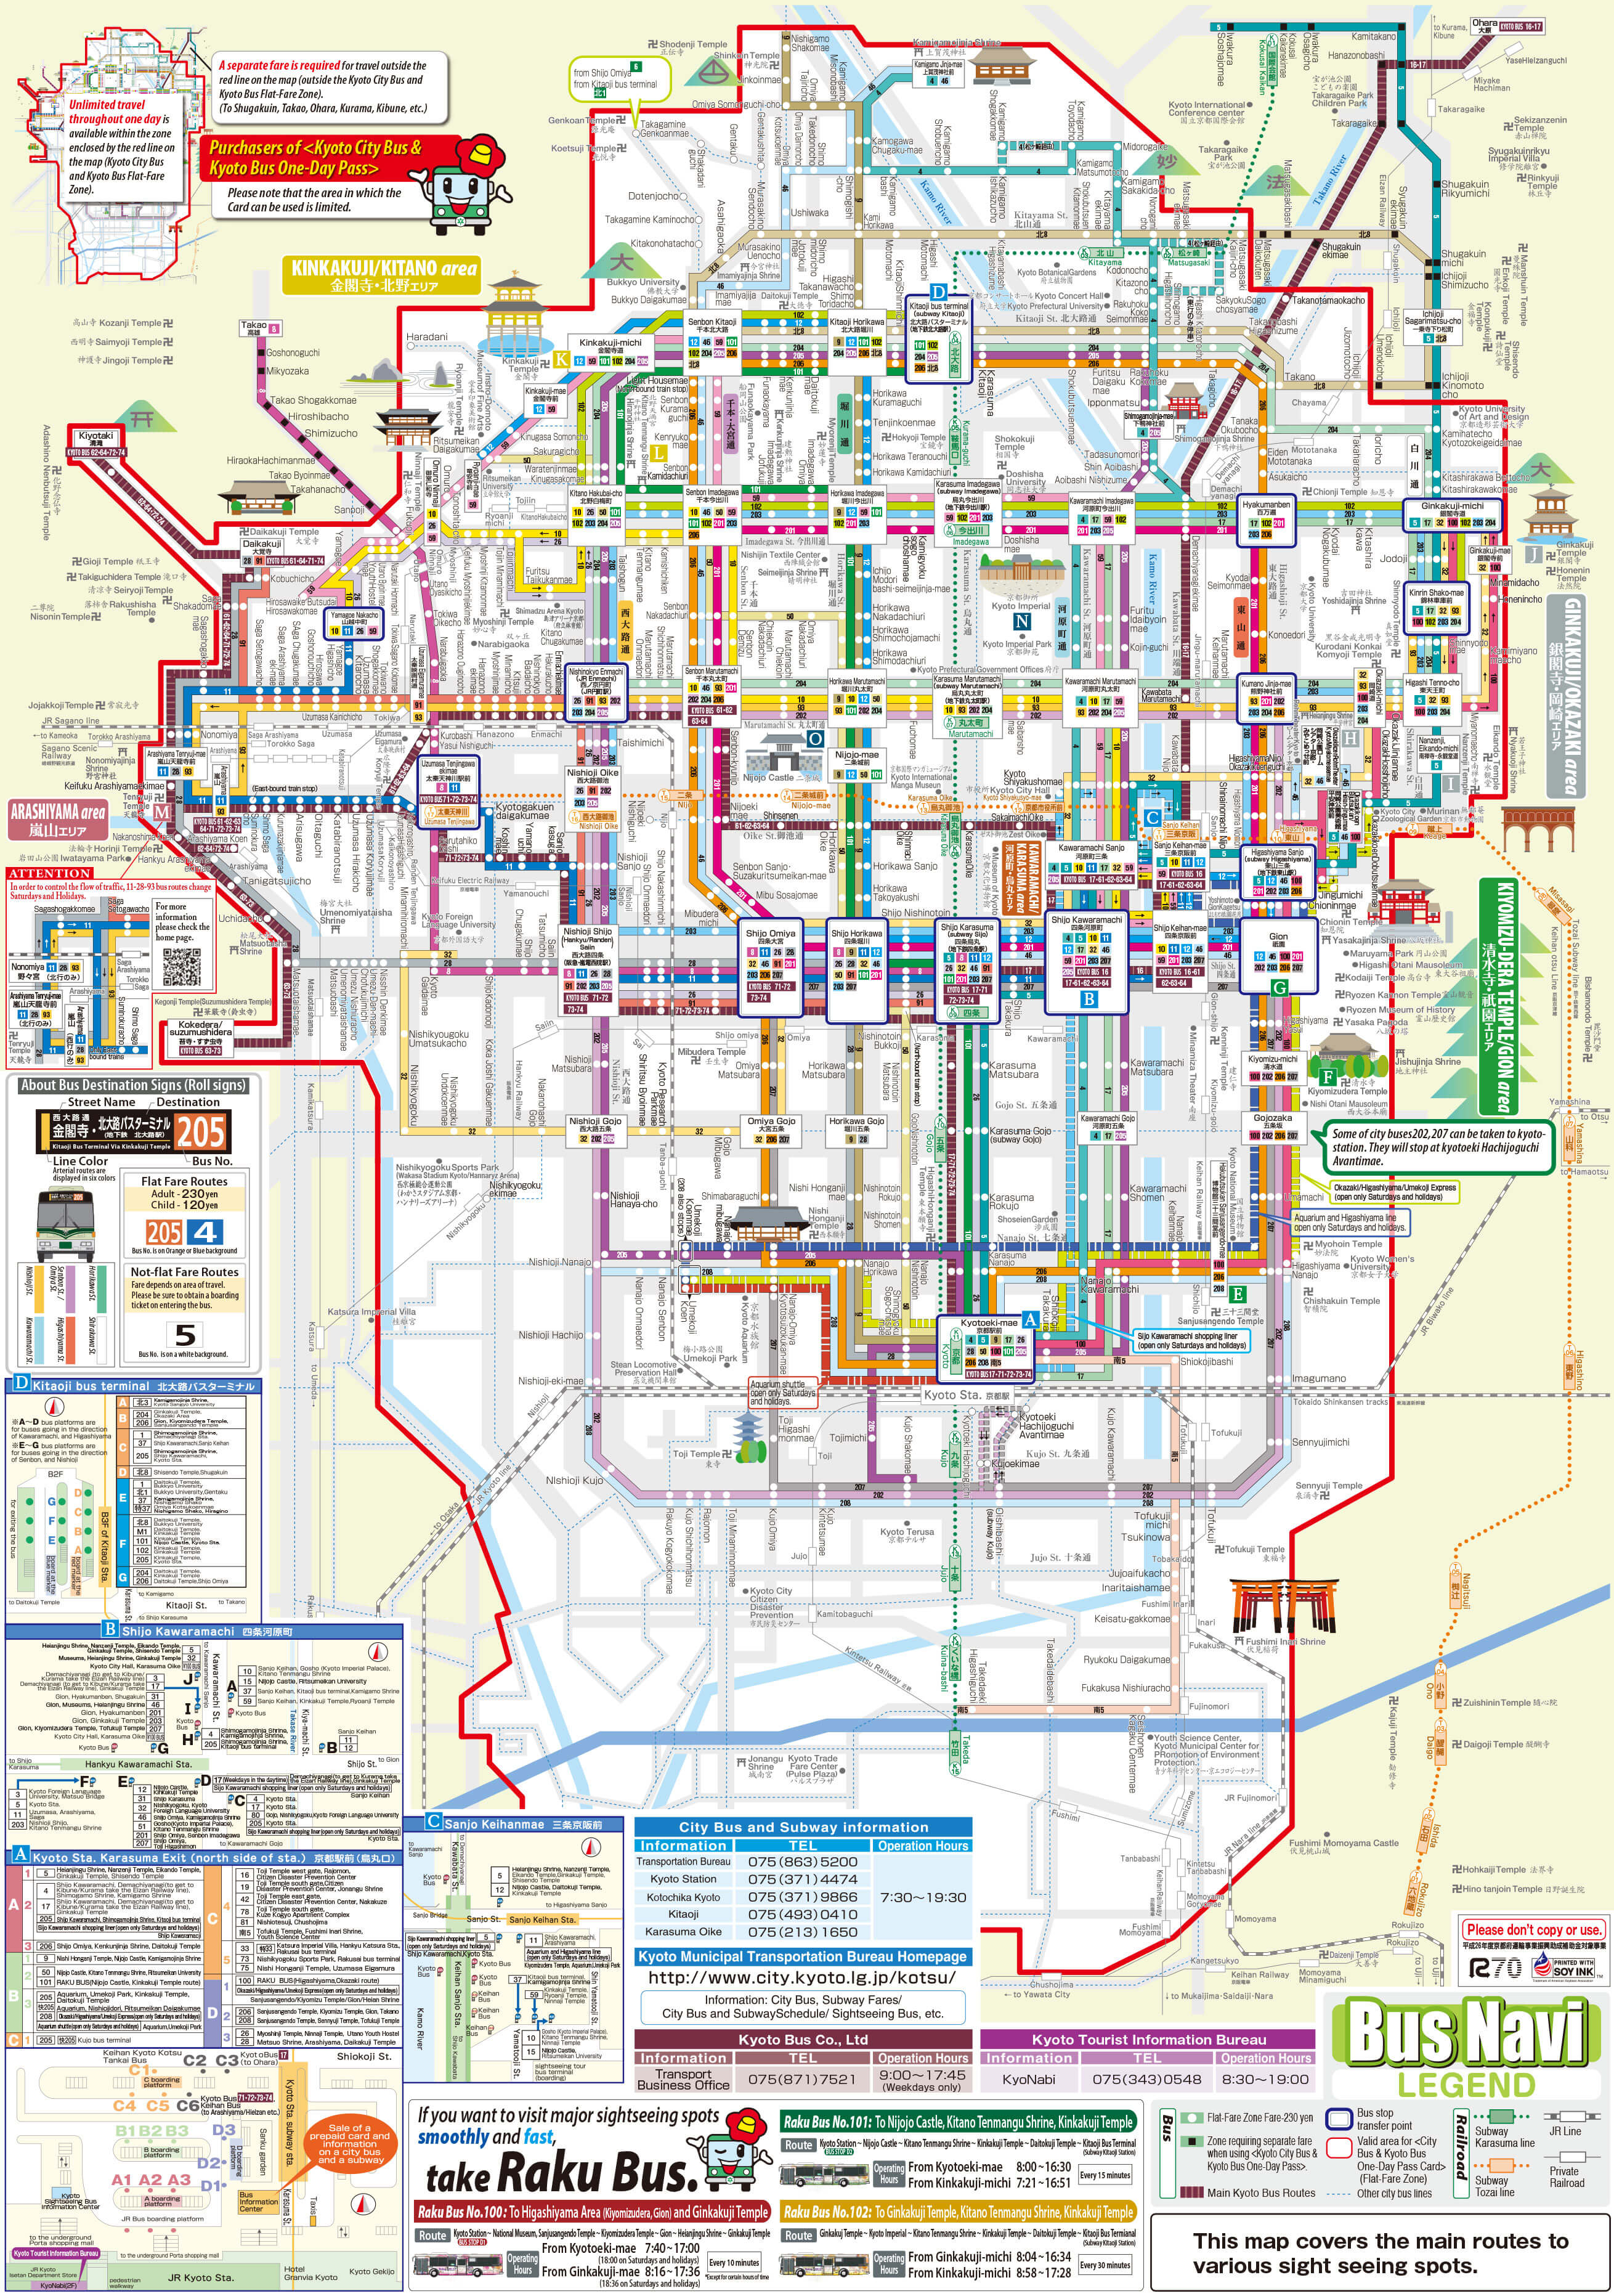 A Guide To Riding The Kyoto Buses